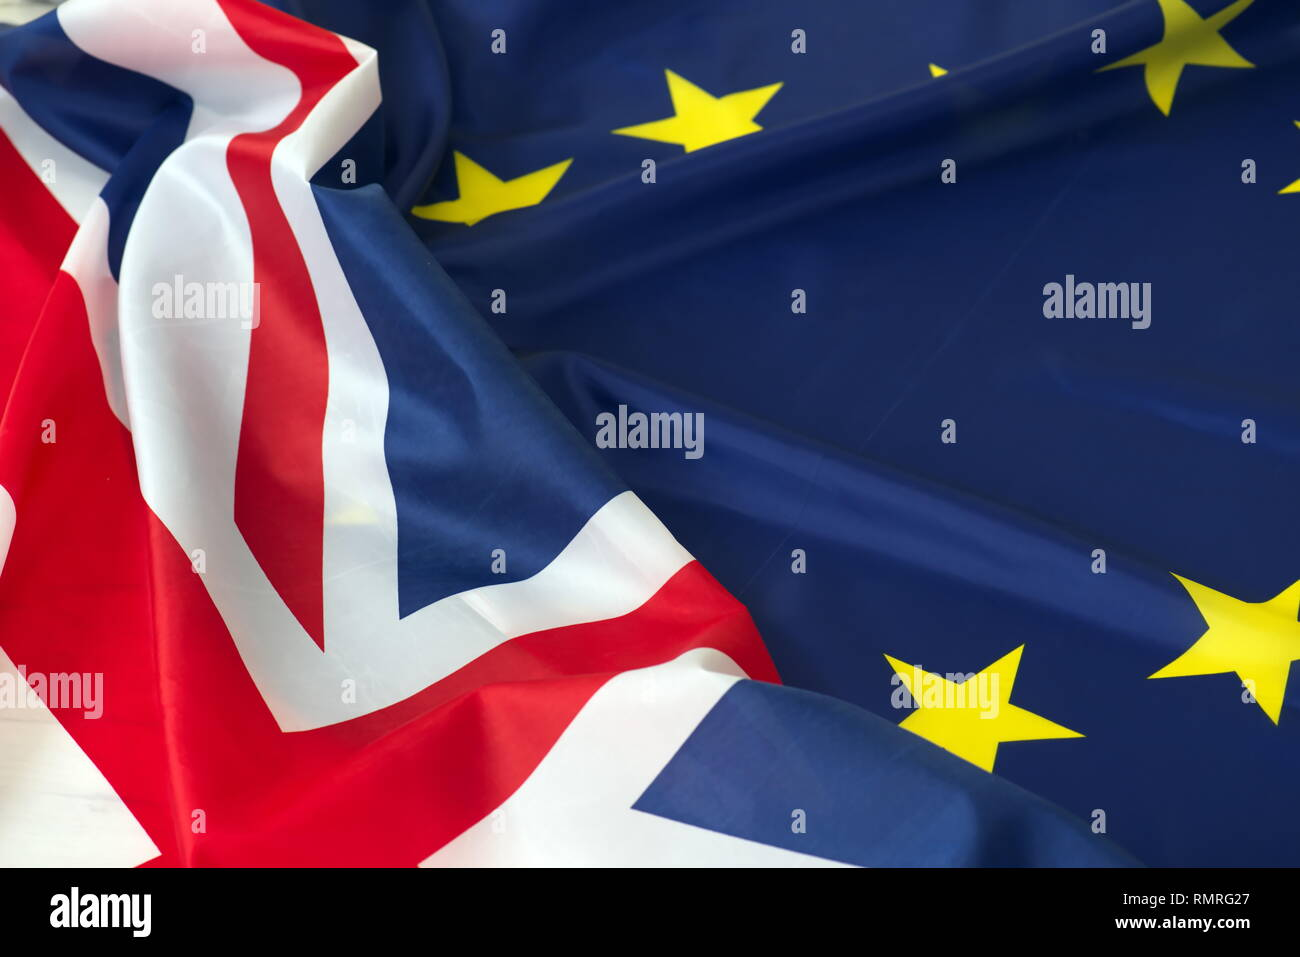 EU Union Jack flag European Union British flag Stock Photo